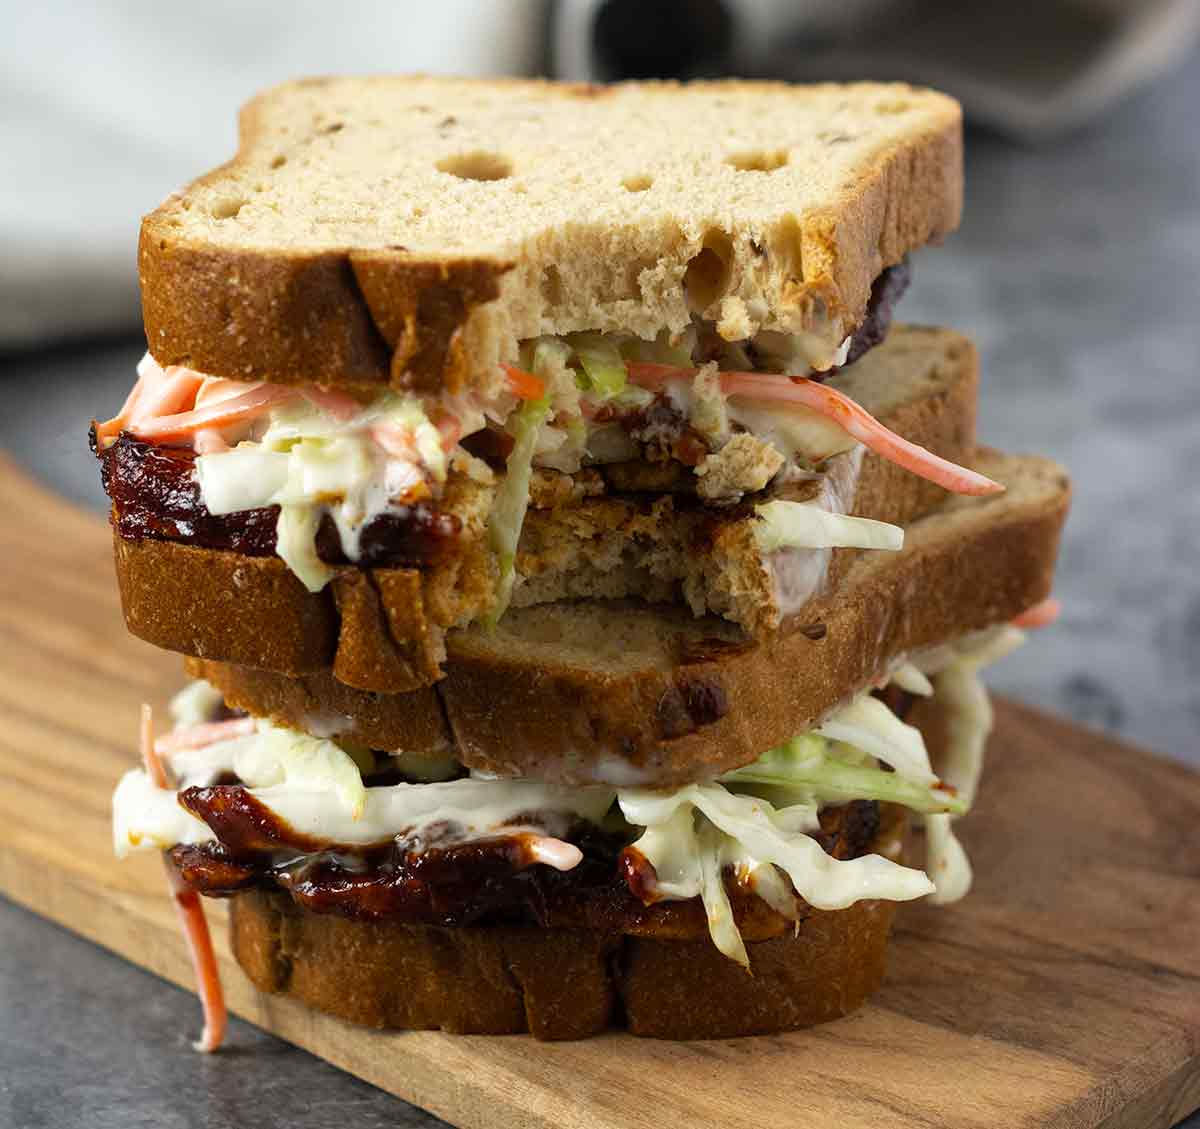 Stacked barbecue tofu sandwiches with the top one having a bite taken